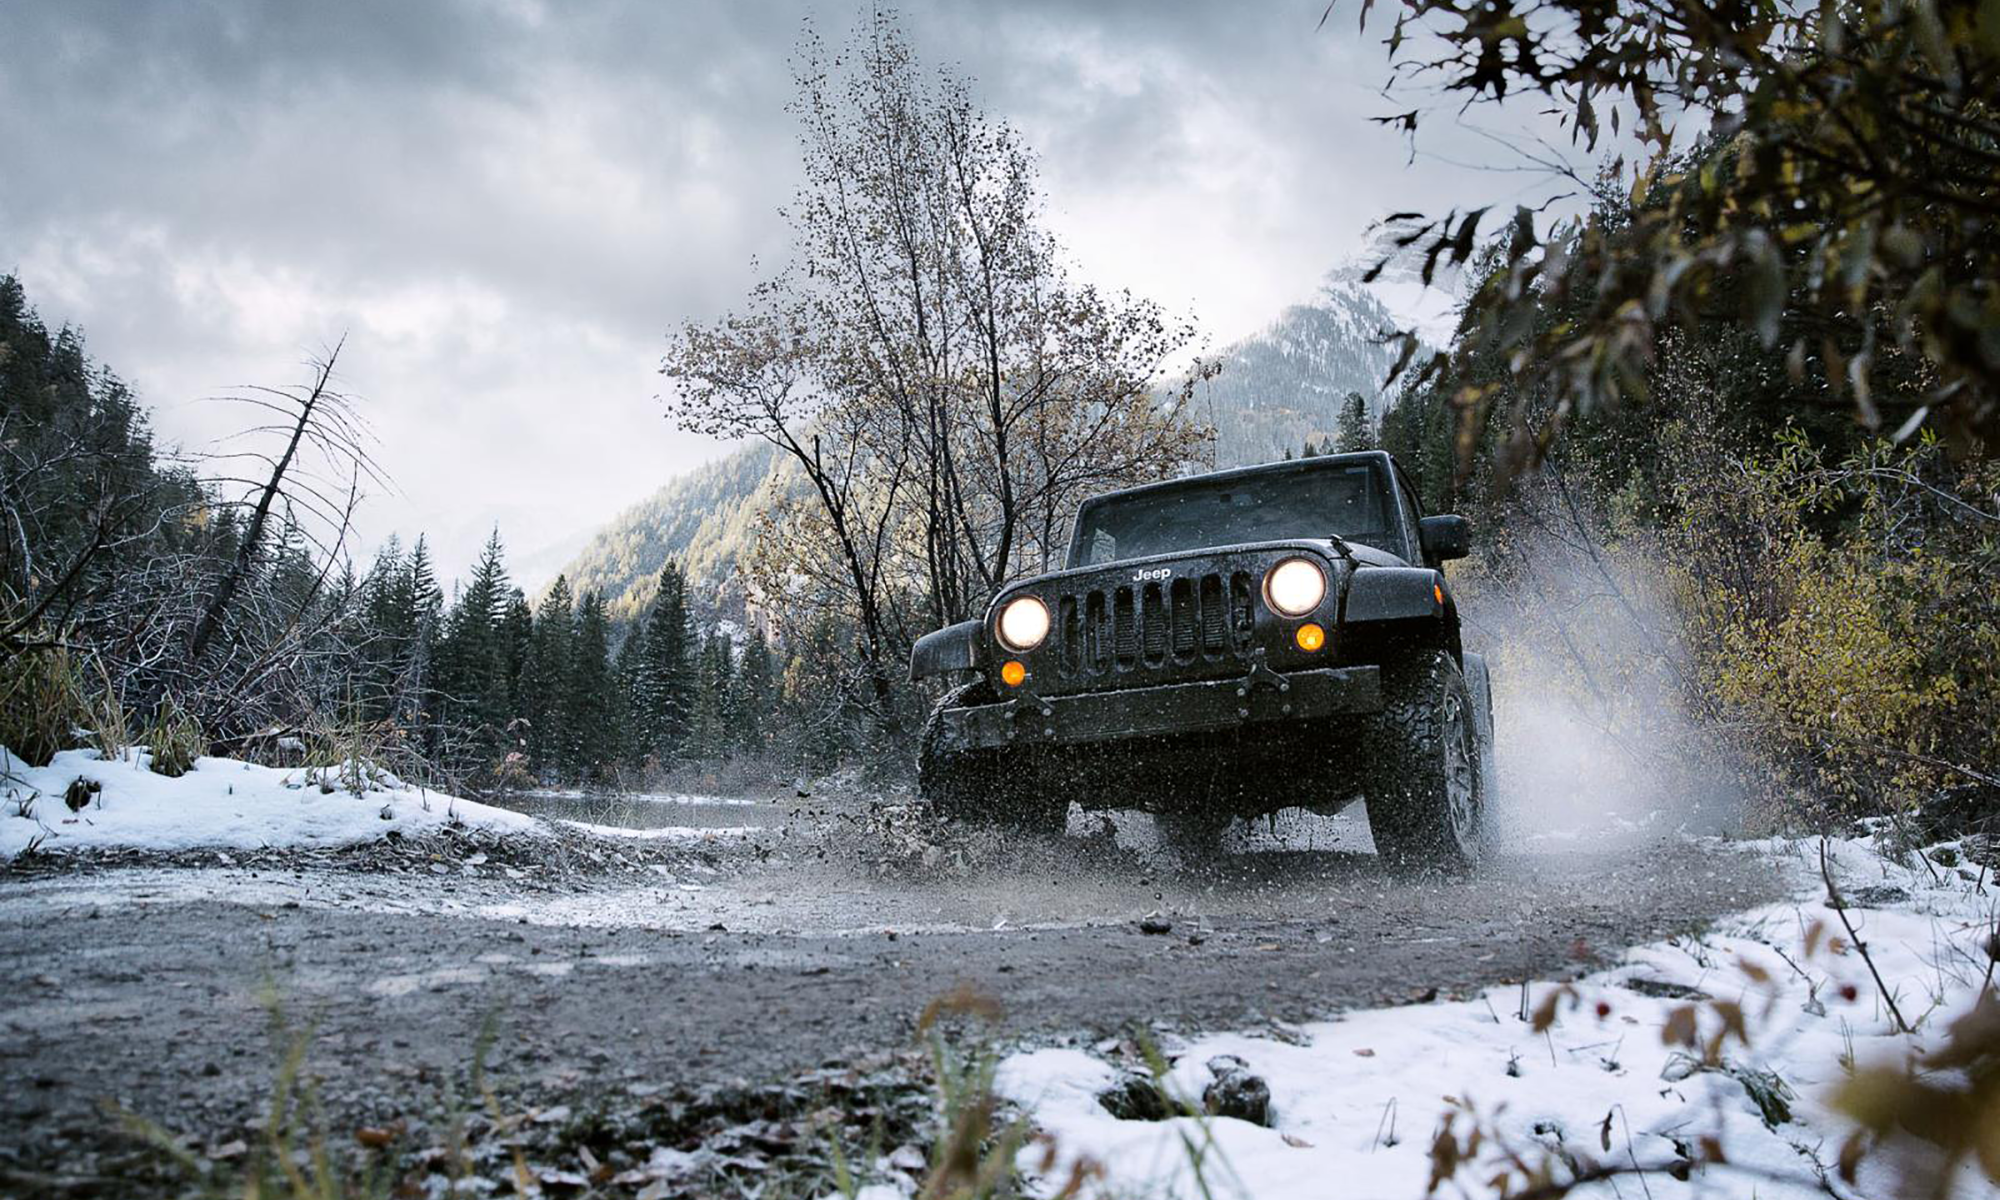 Photo courtesy of BFGoodrich